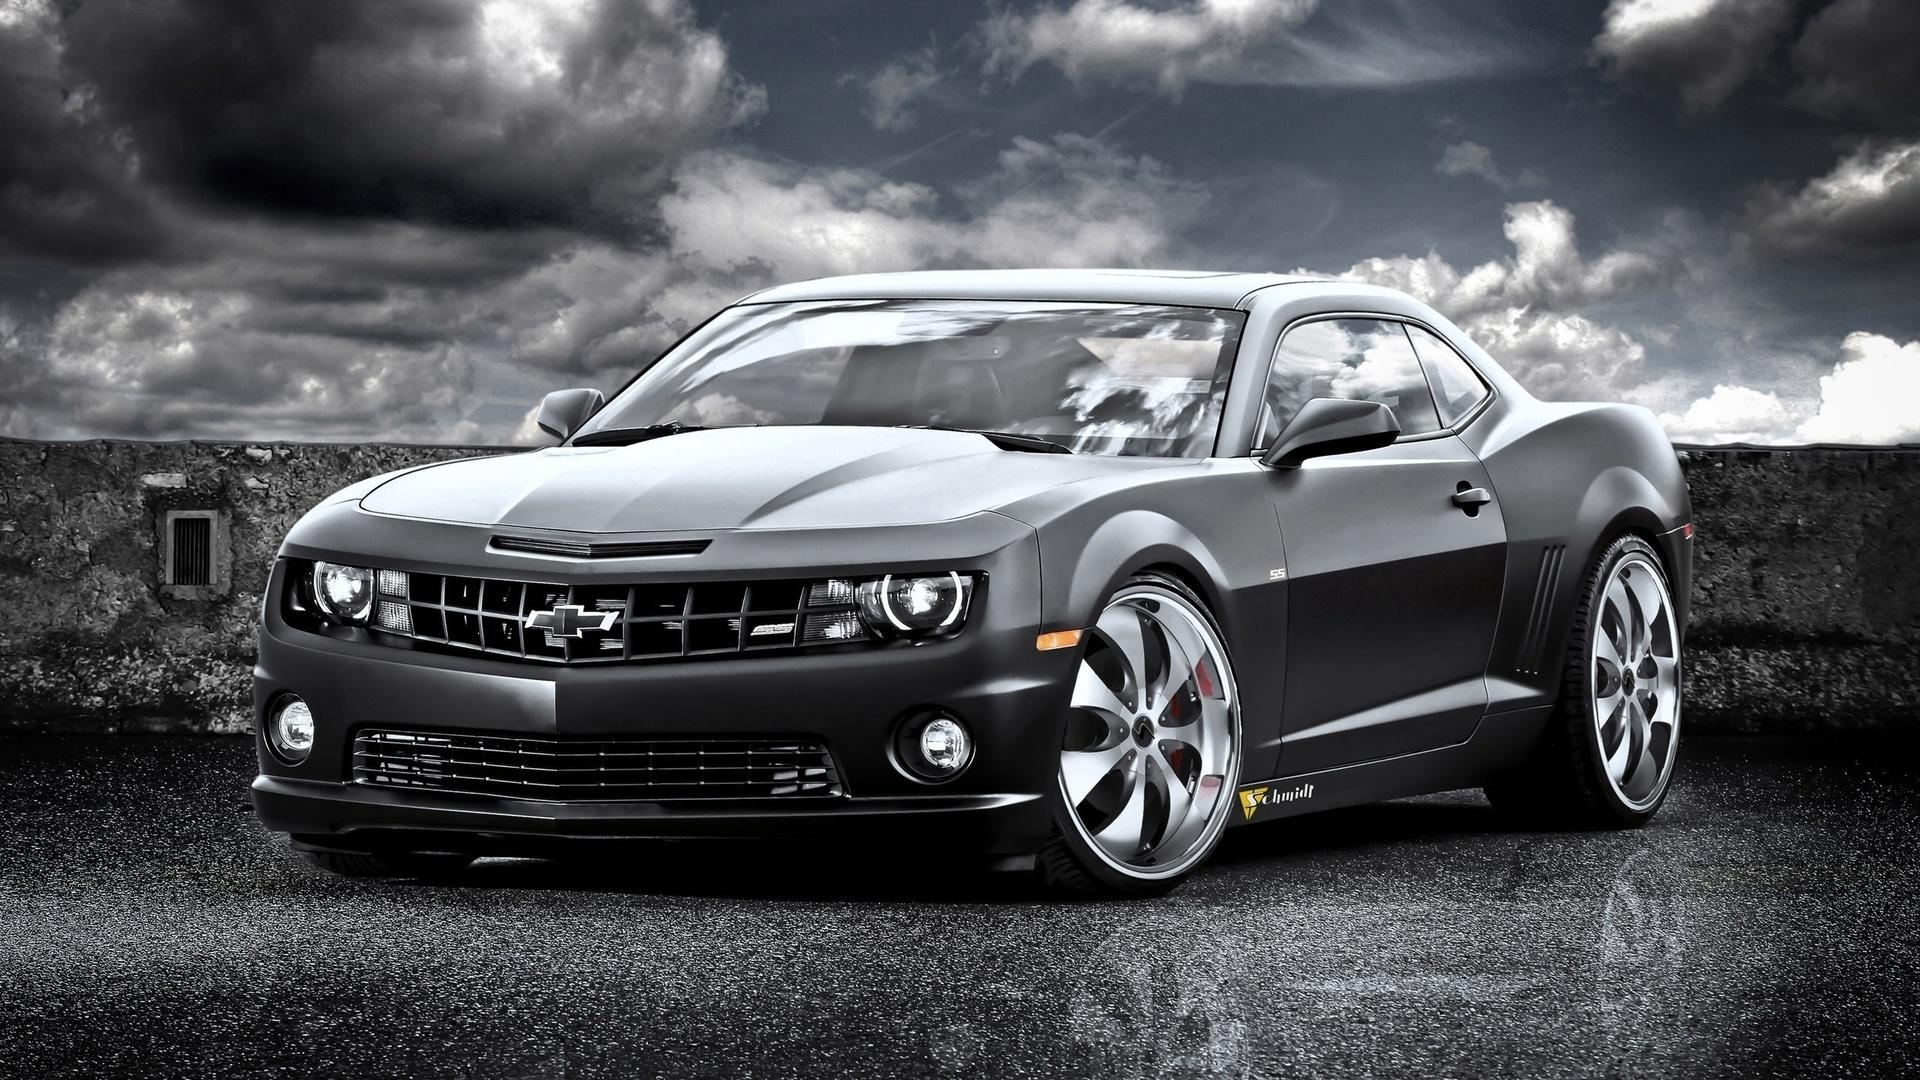 Hd Fast Black Chevrolet Camaro Ss Wallpaper 1920x1080px